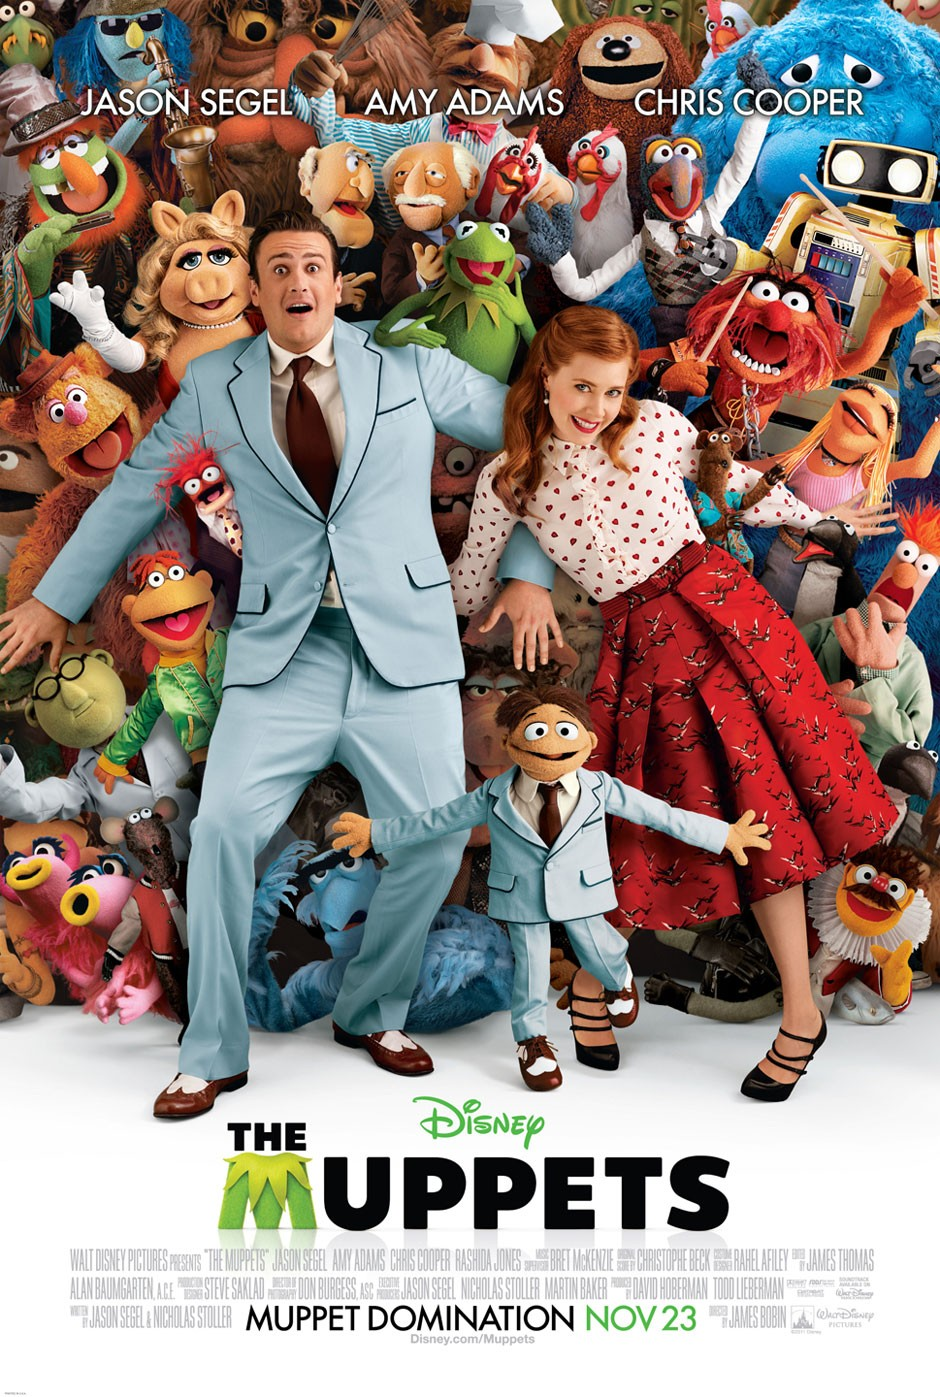 The Muppets 2011 [TRUEFRENCH] DVDRiP [MULTI]